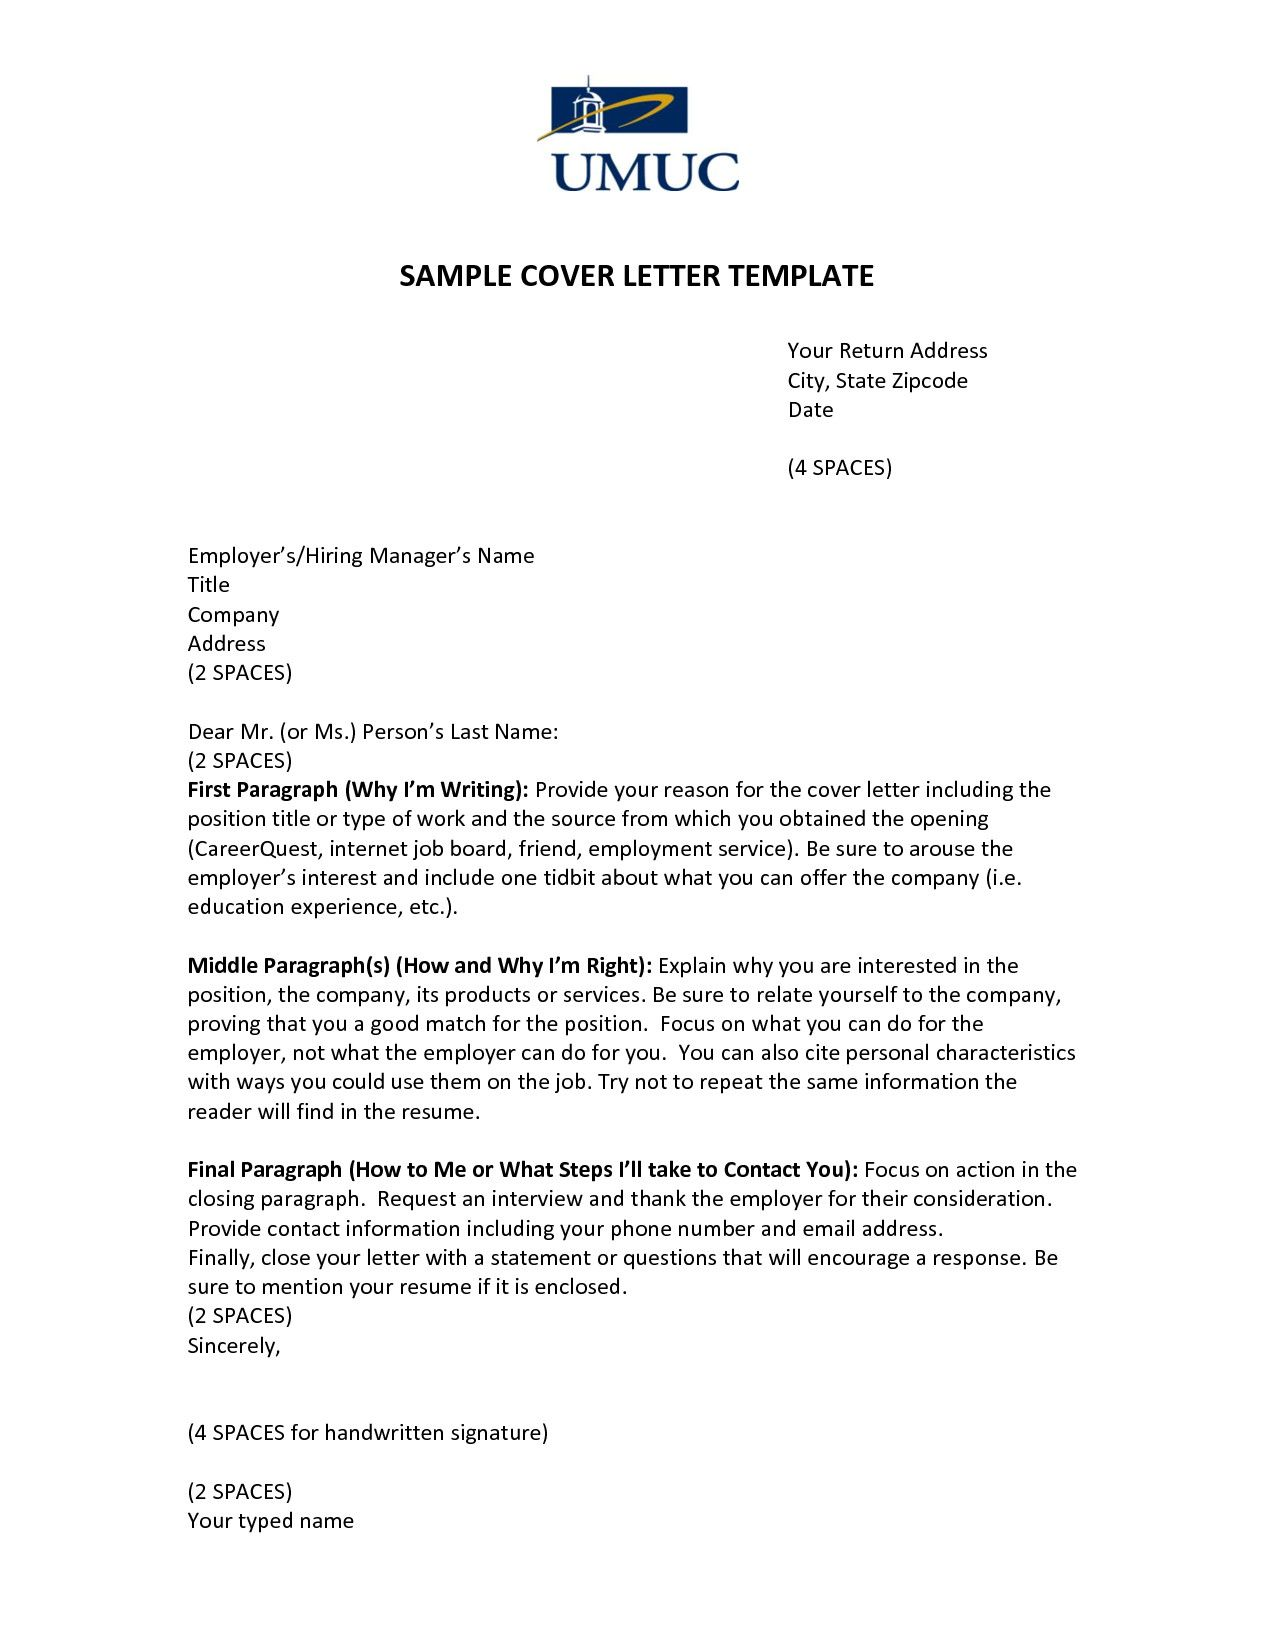 50 Creative Cover Letter Opening Sentence Examples Mn4n Cover Letter For Resume Letter Templates Introduction Letter